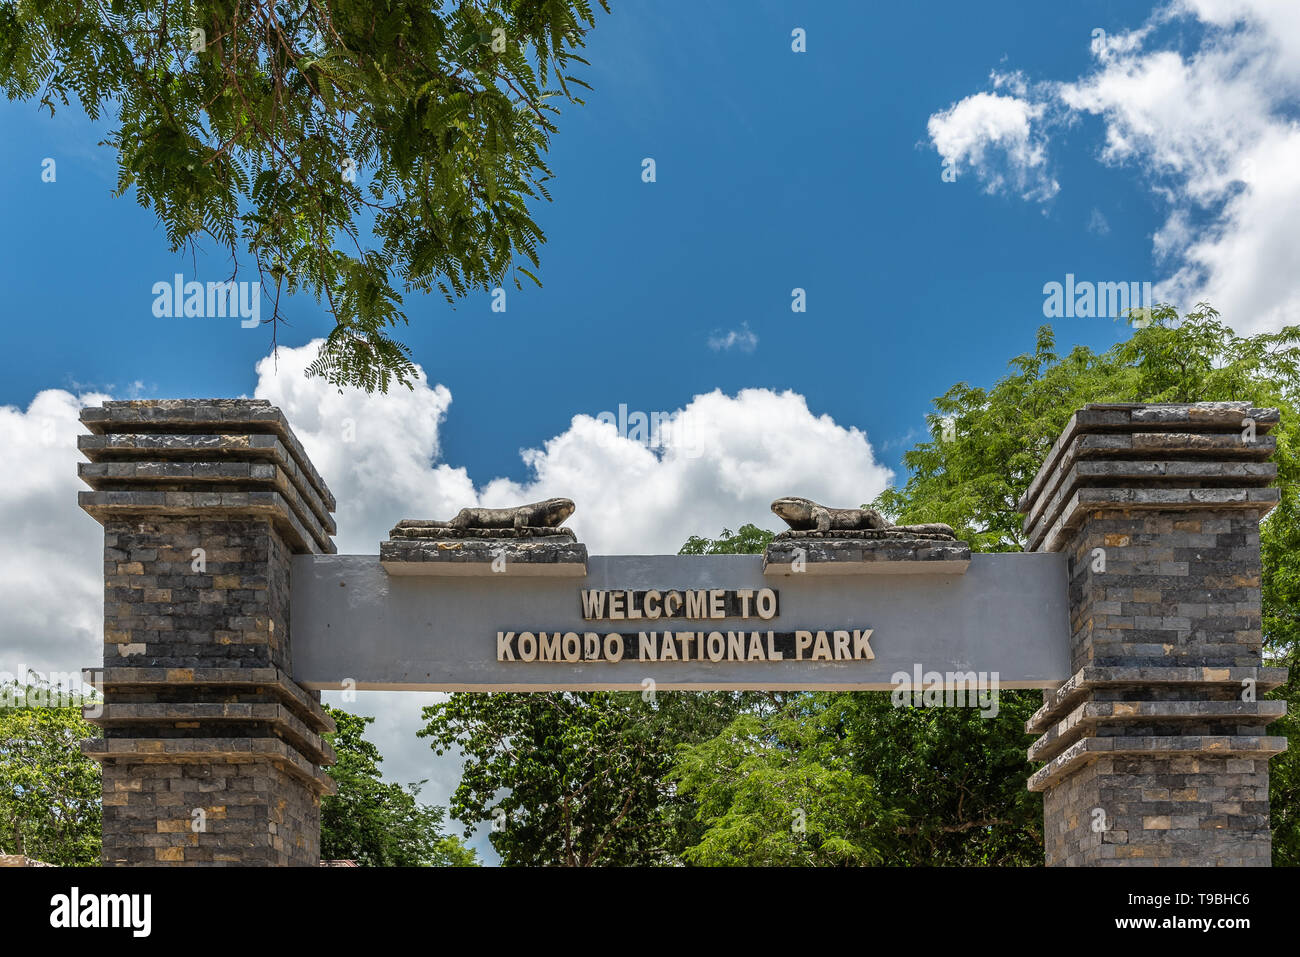 Komodo Island, Indonesia - February 24, 2019: Komodo National Park. Sign on top of brown brick gate into the National Reserve. Green foliage under blu - Stock Image